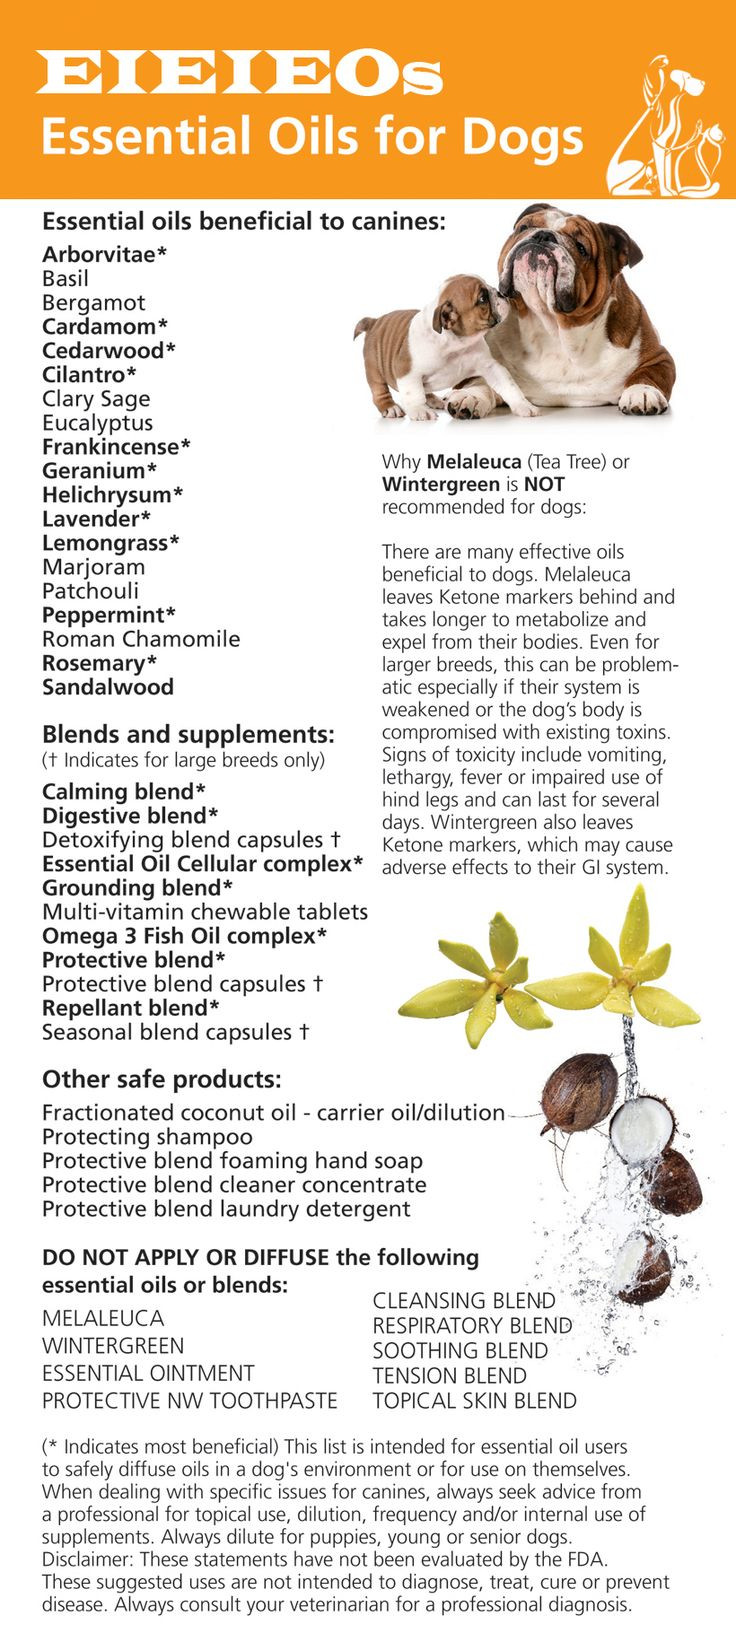 Essential oils safe to diffuse in a dog's environment. Please read disclaimer